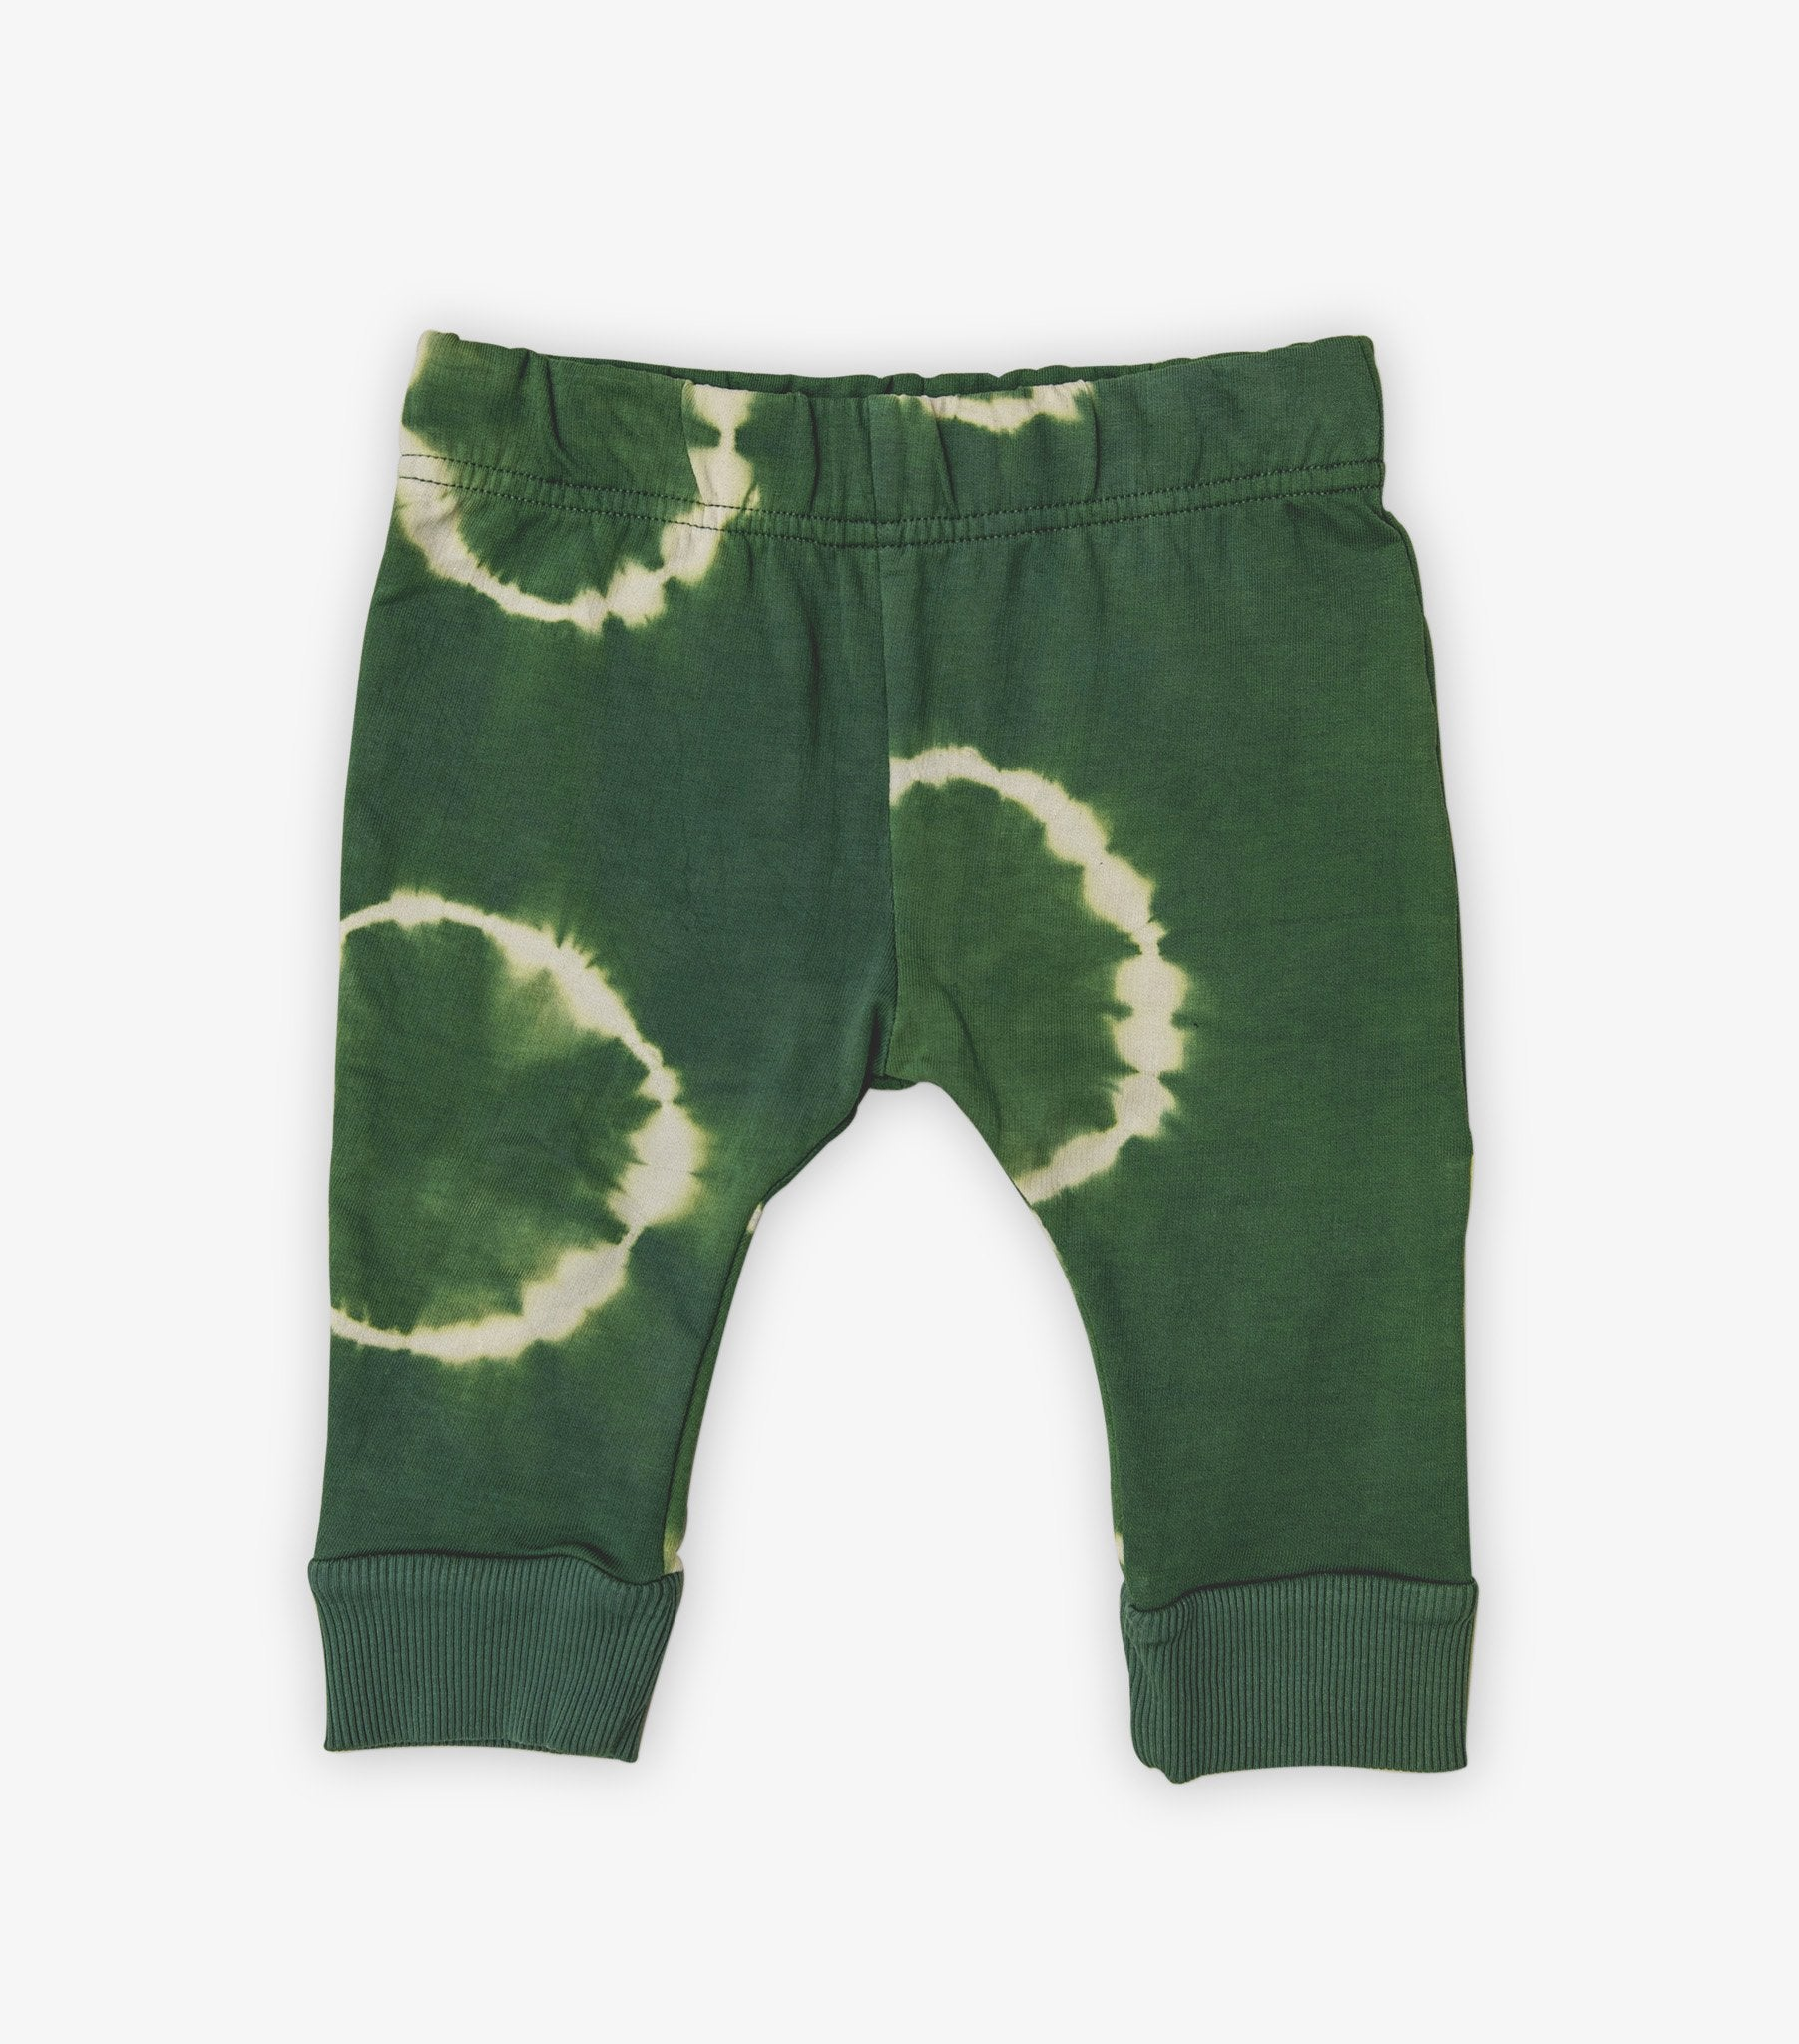 Baby Tracksuit Pants - Cactus Green